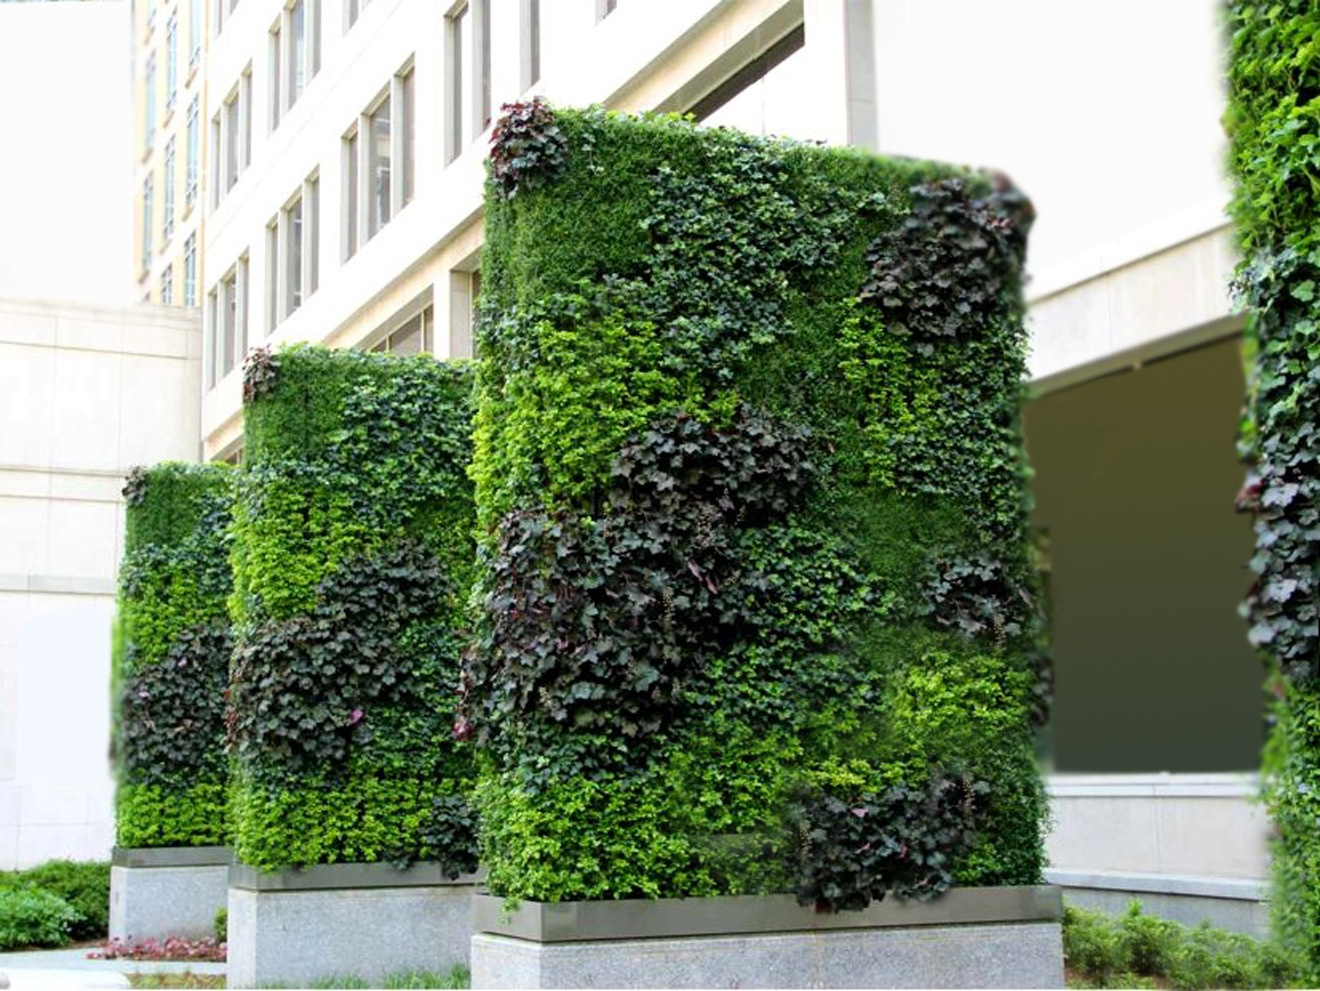 Outdoor Vertical Garden Services in India